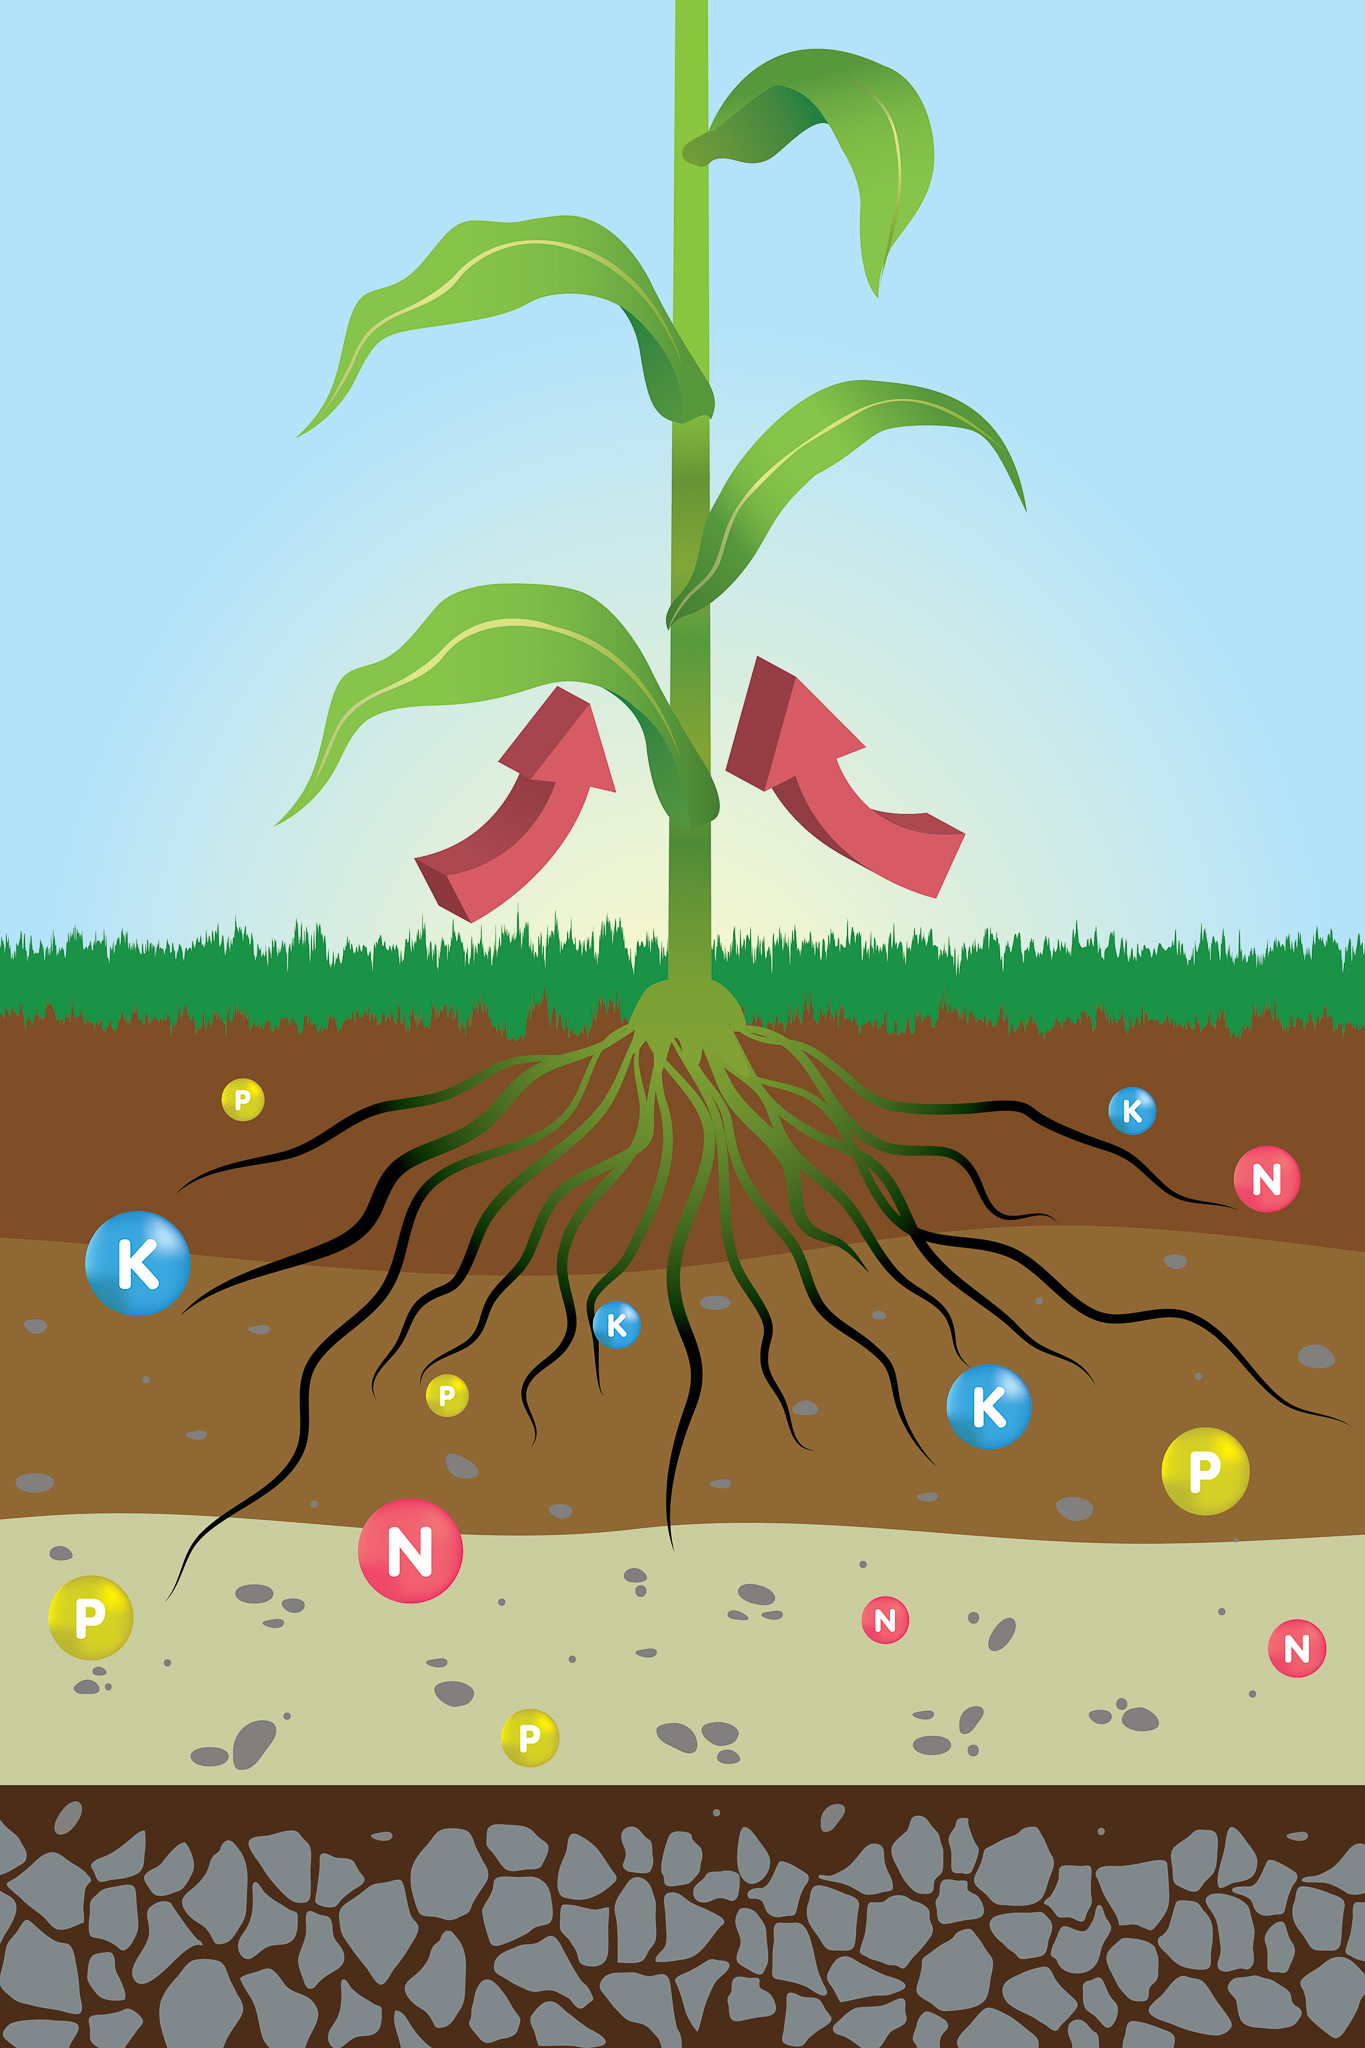 How plants absorb Phosphorous, Potassium and Nitrogen